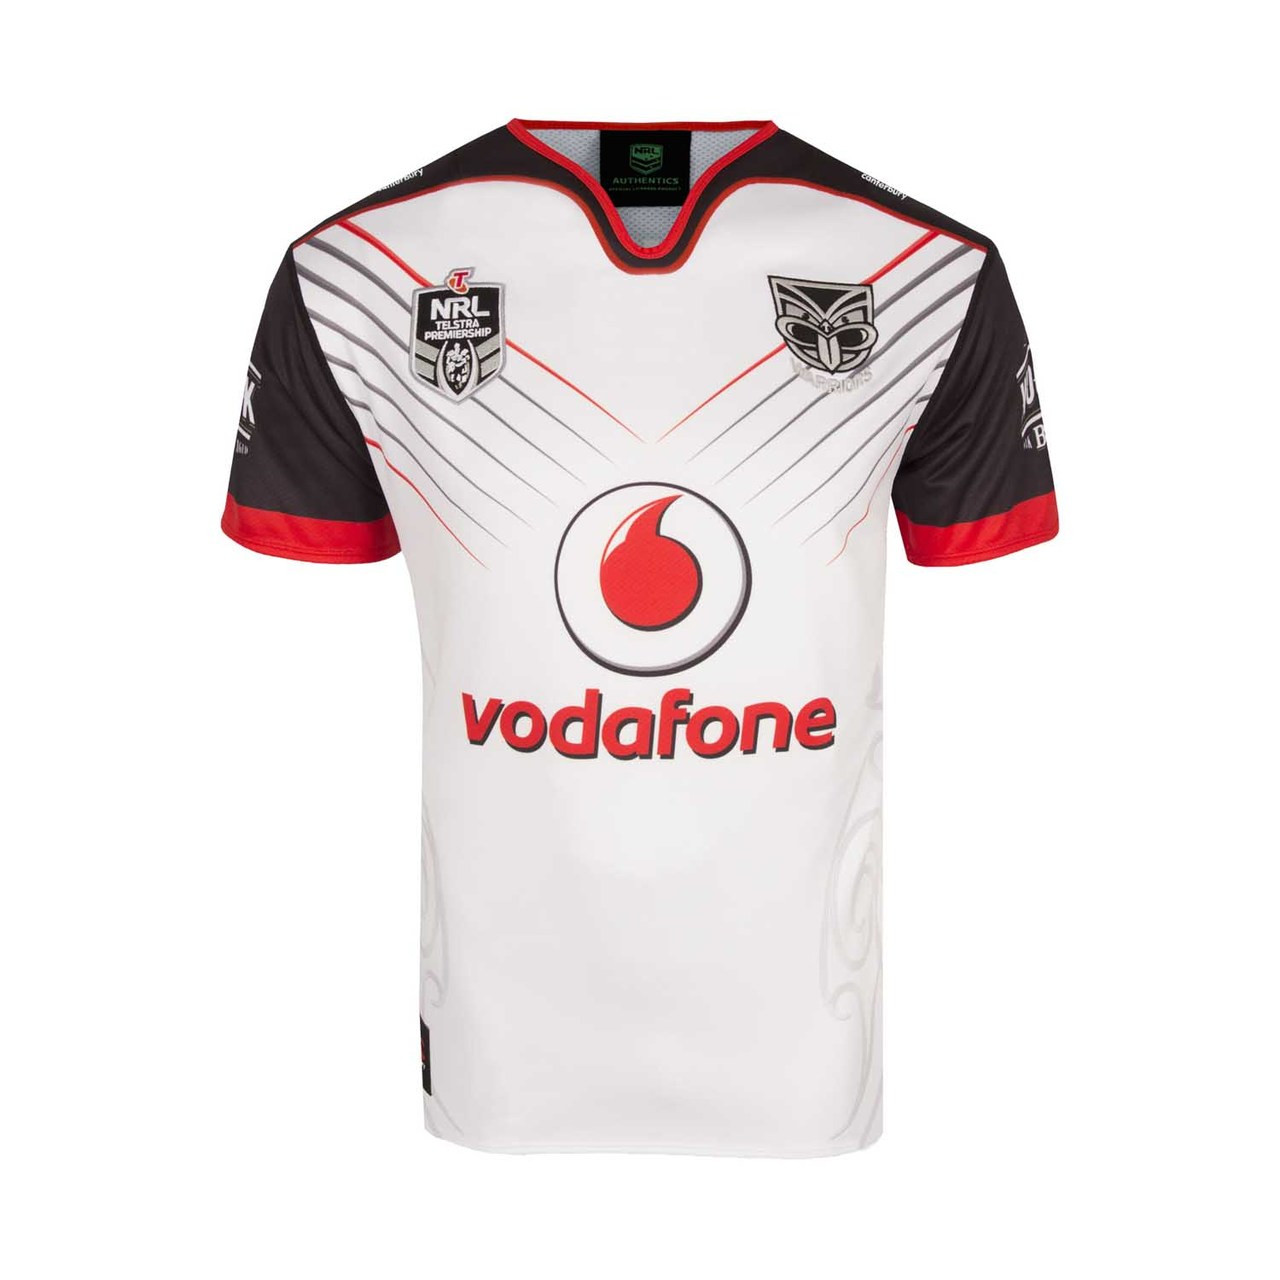 check out 4680f 44e7e 2018 Vodafone Warriors CCC Away Jersey - Adults